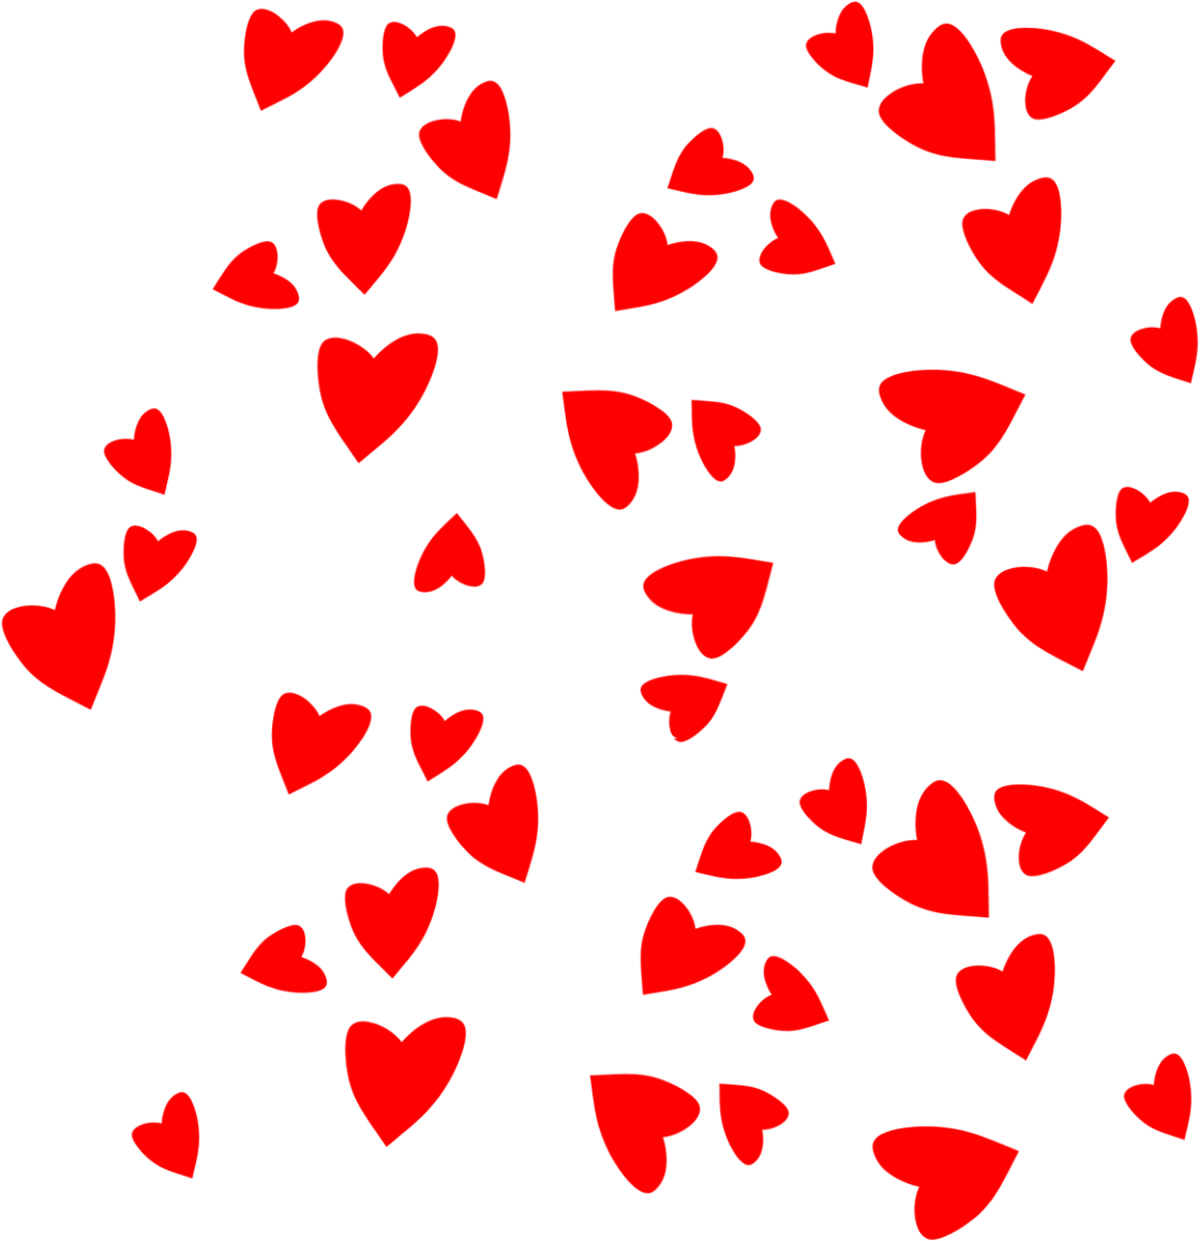 February hearts clipart images royalty free download FAVORITE FUN THINGS ABOUT SCHAUMBURG: FEBRUARY EDITION   Local History royalty free download